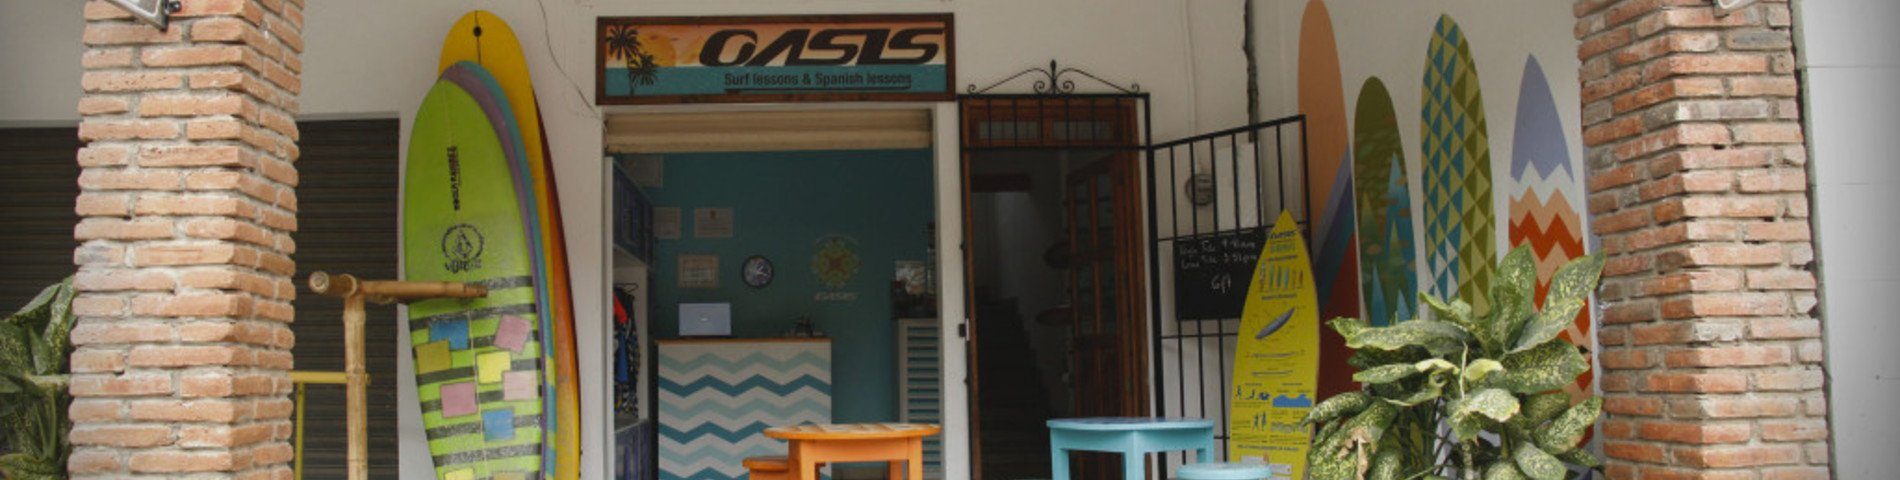 Oasis Language School kép 1